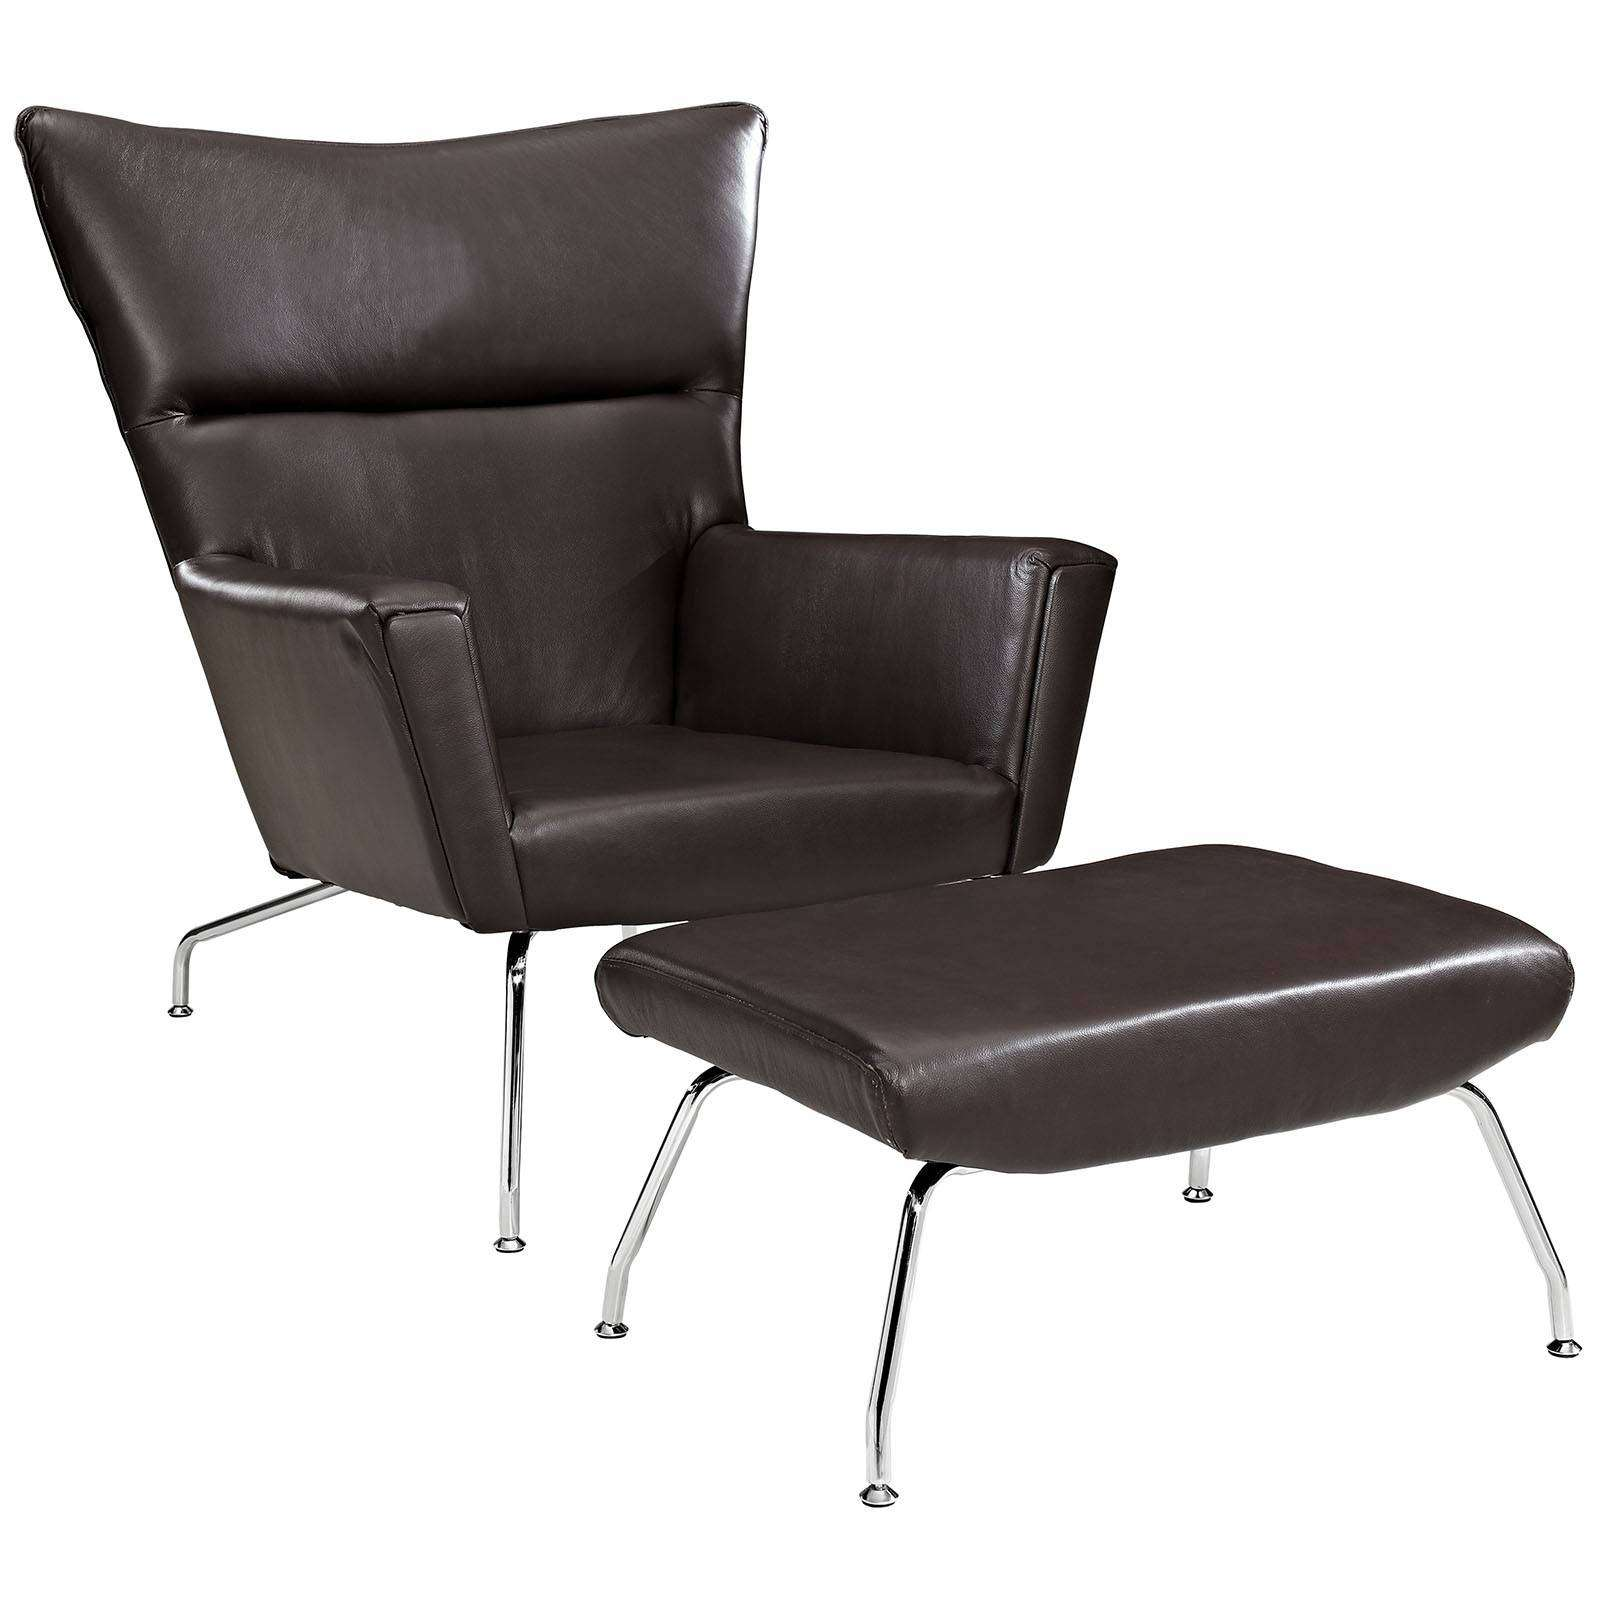 Wegner Ch445 Wing Lounge Chair Leather